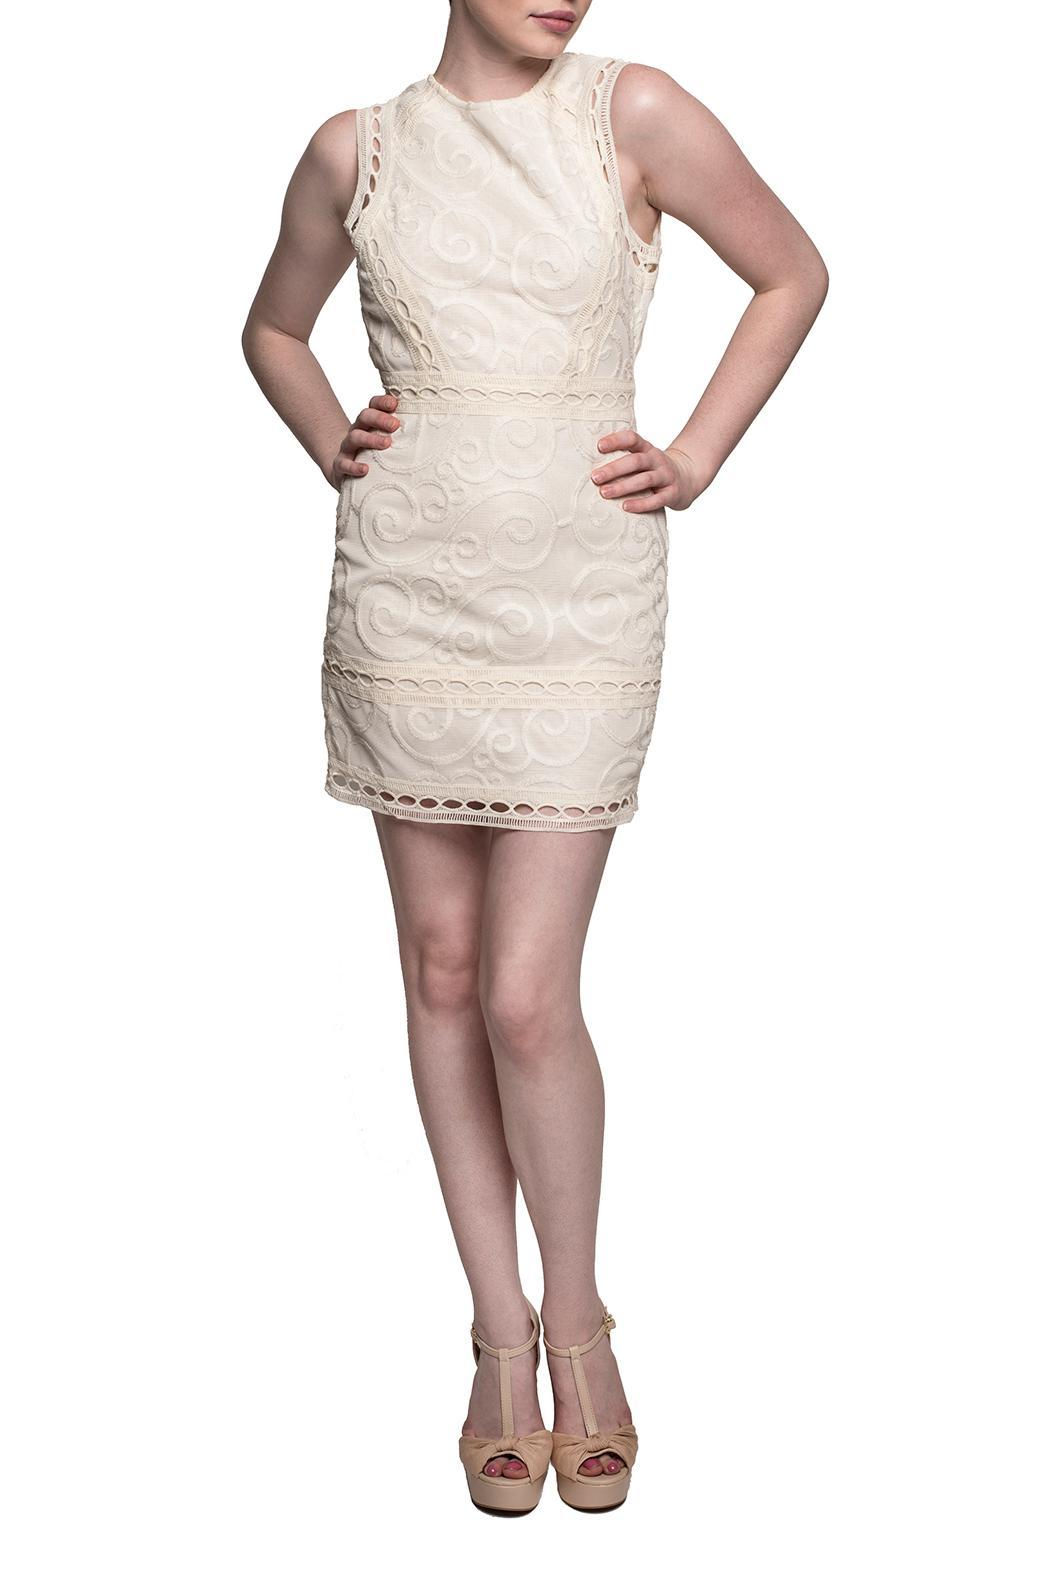 J.O.A. Victoria Lace Dress - Front Cropped Image